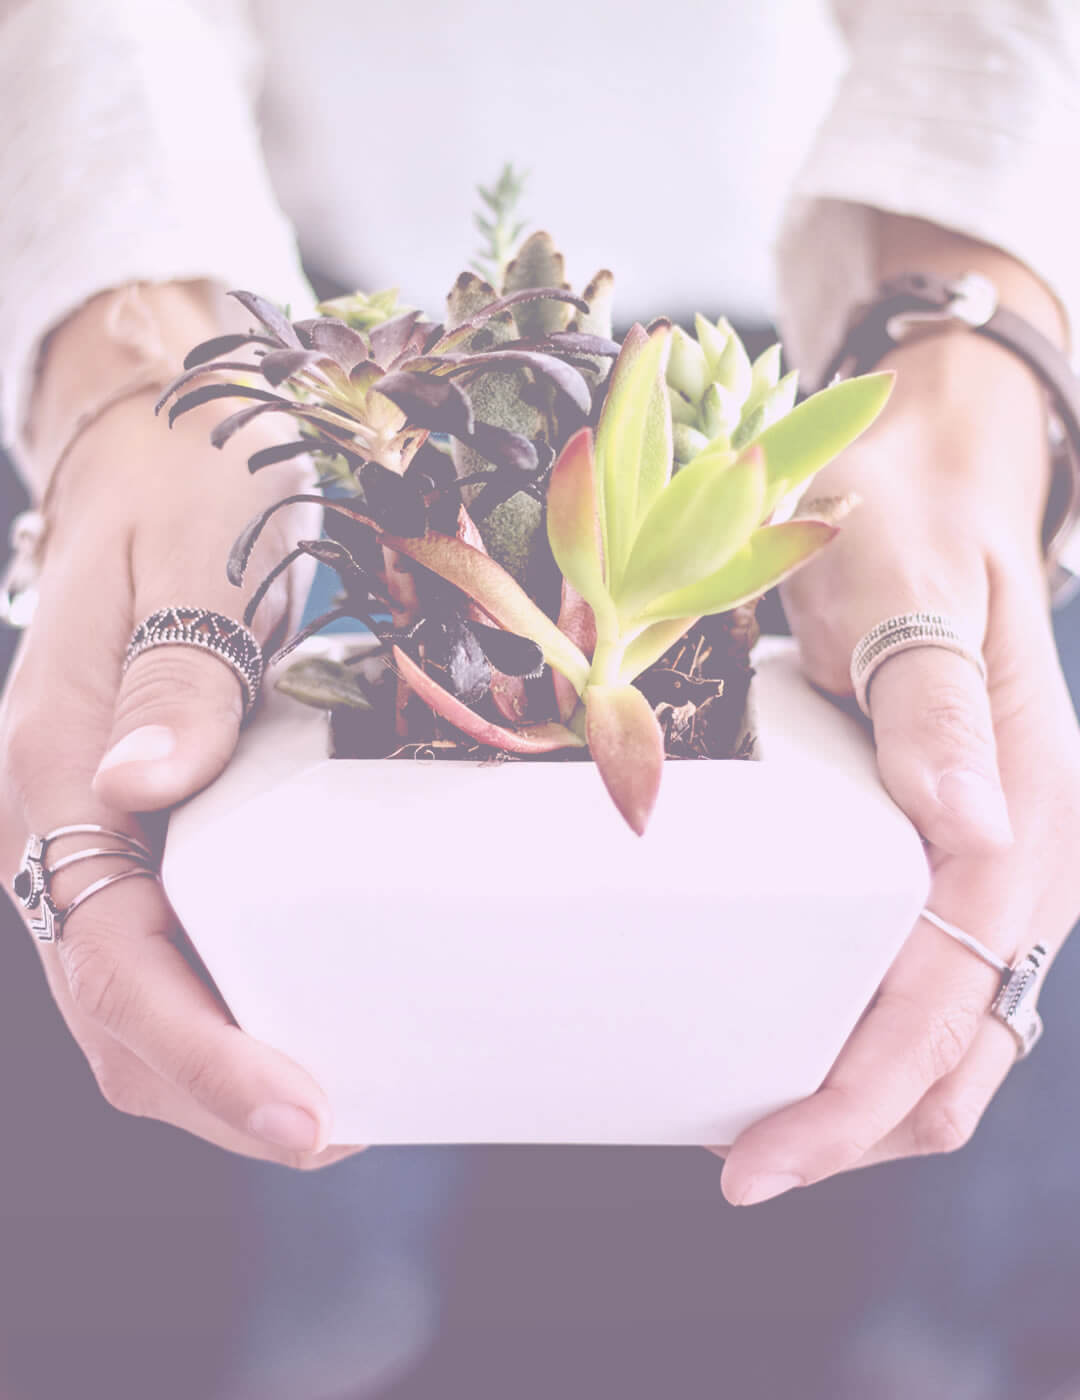 Caring for plants as one of the mindfulness activities